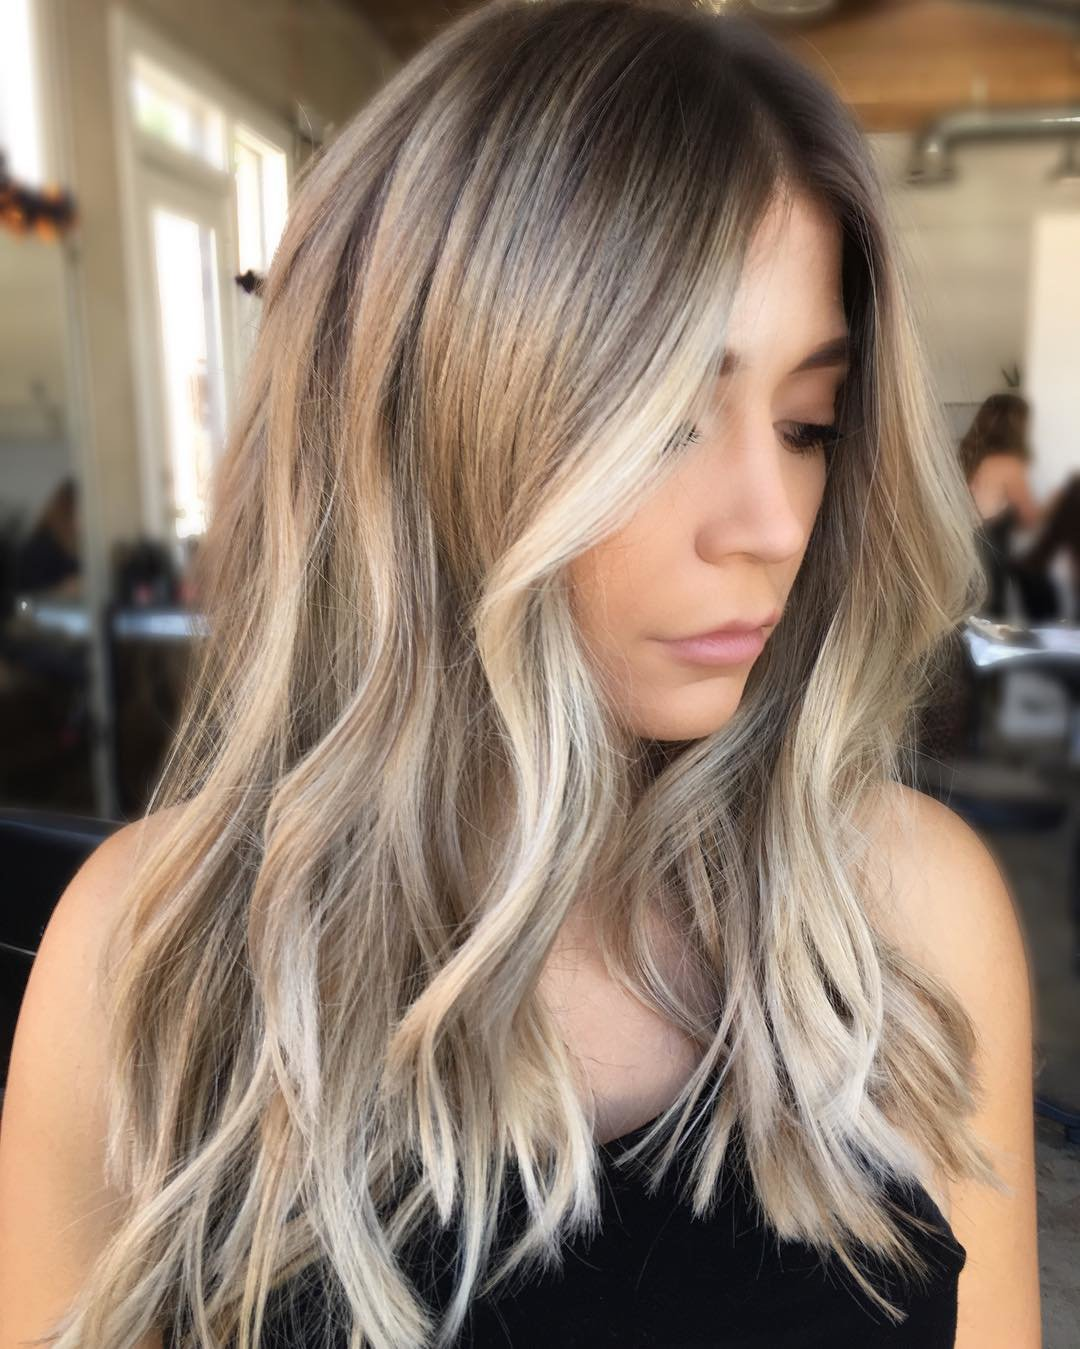 Free 10 Ash Blonde Hairstyles For All Skin Tones 2019 Wallpaper